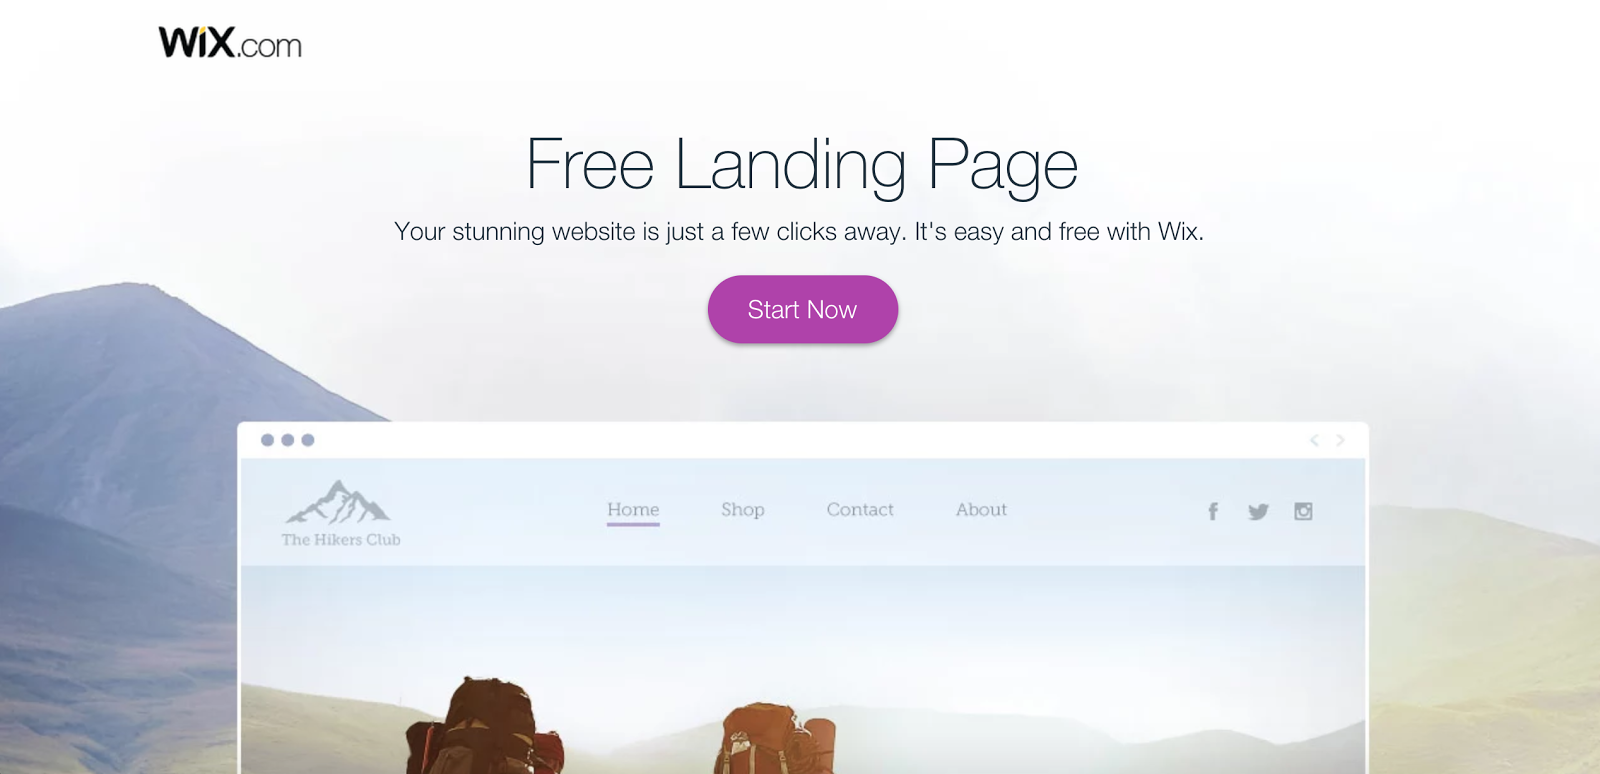 Thsi page does not tell the reader what a landing page is.